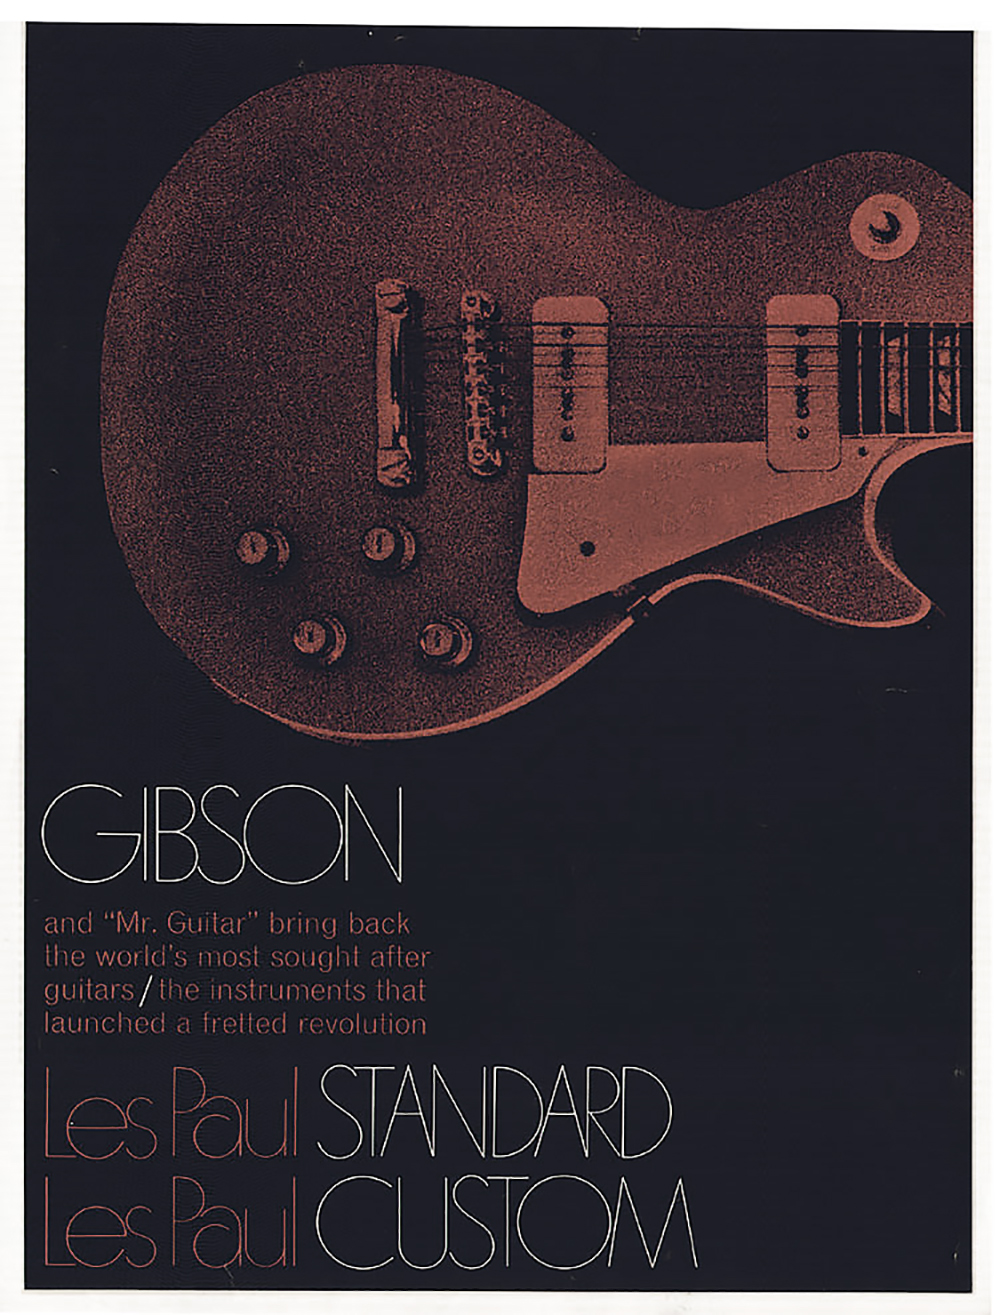 1968 Les Paul brochure cover